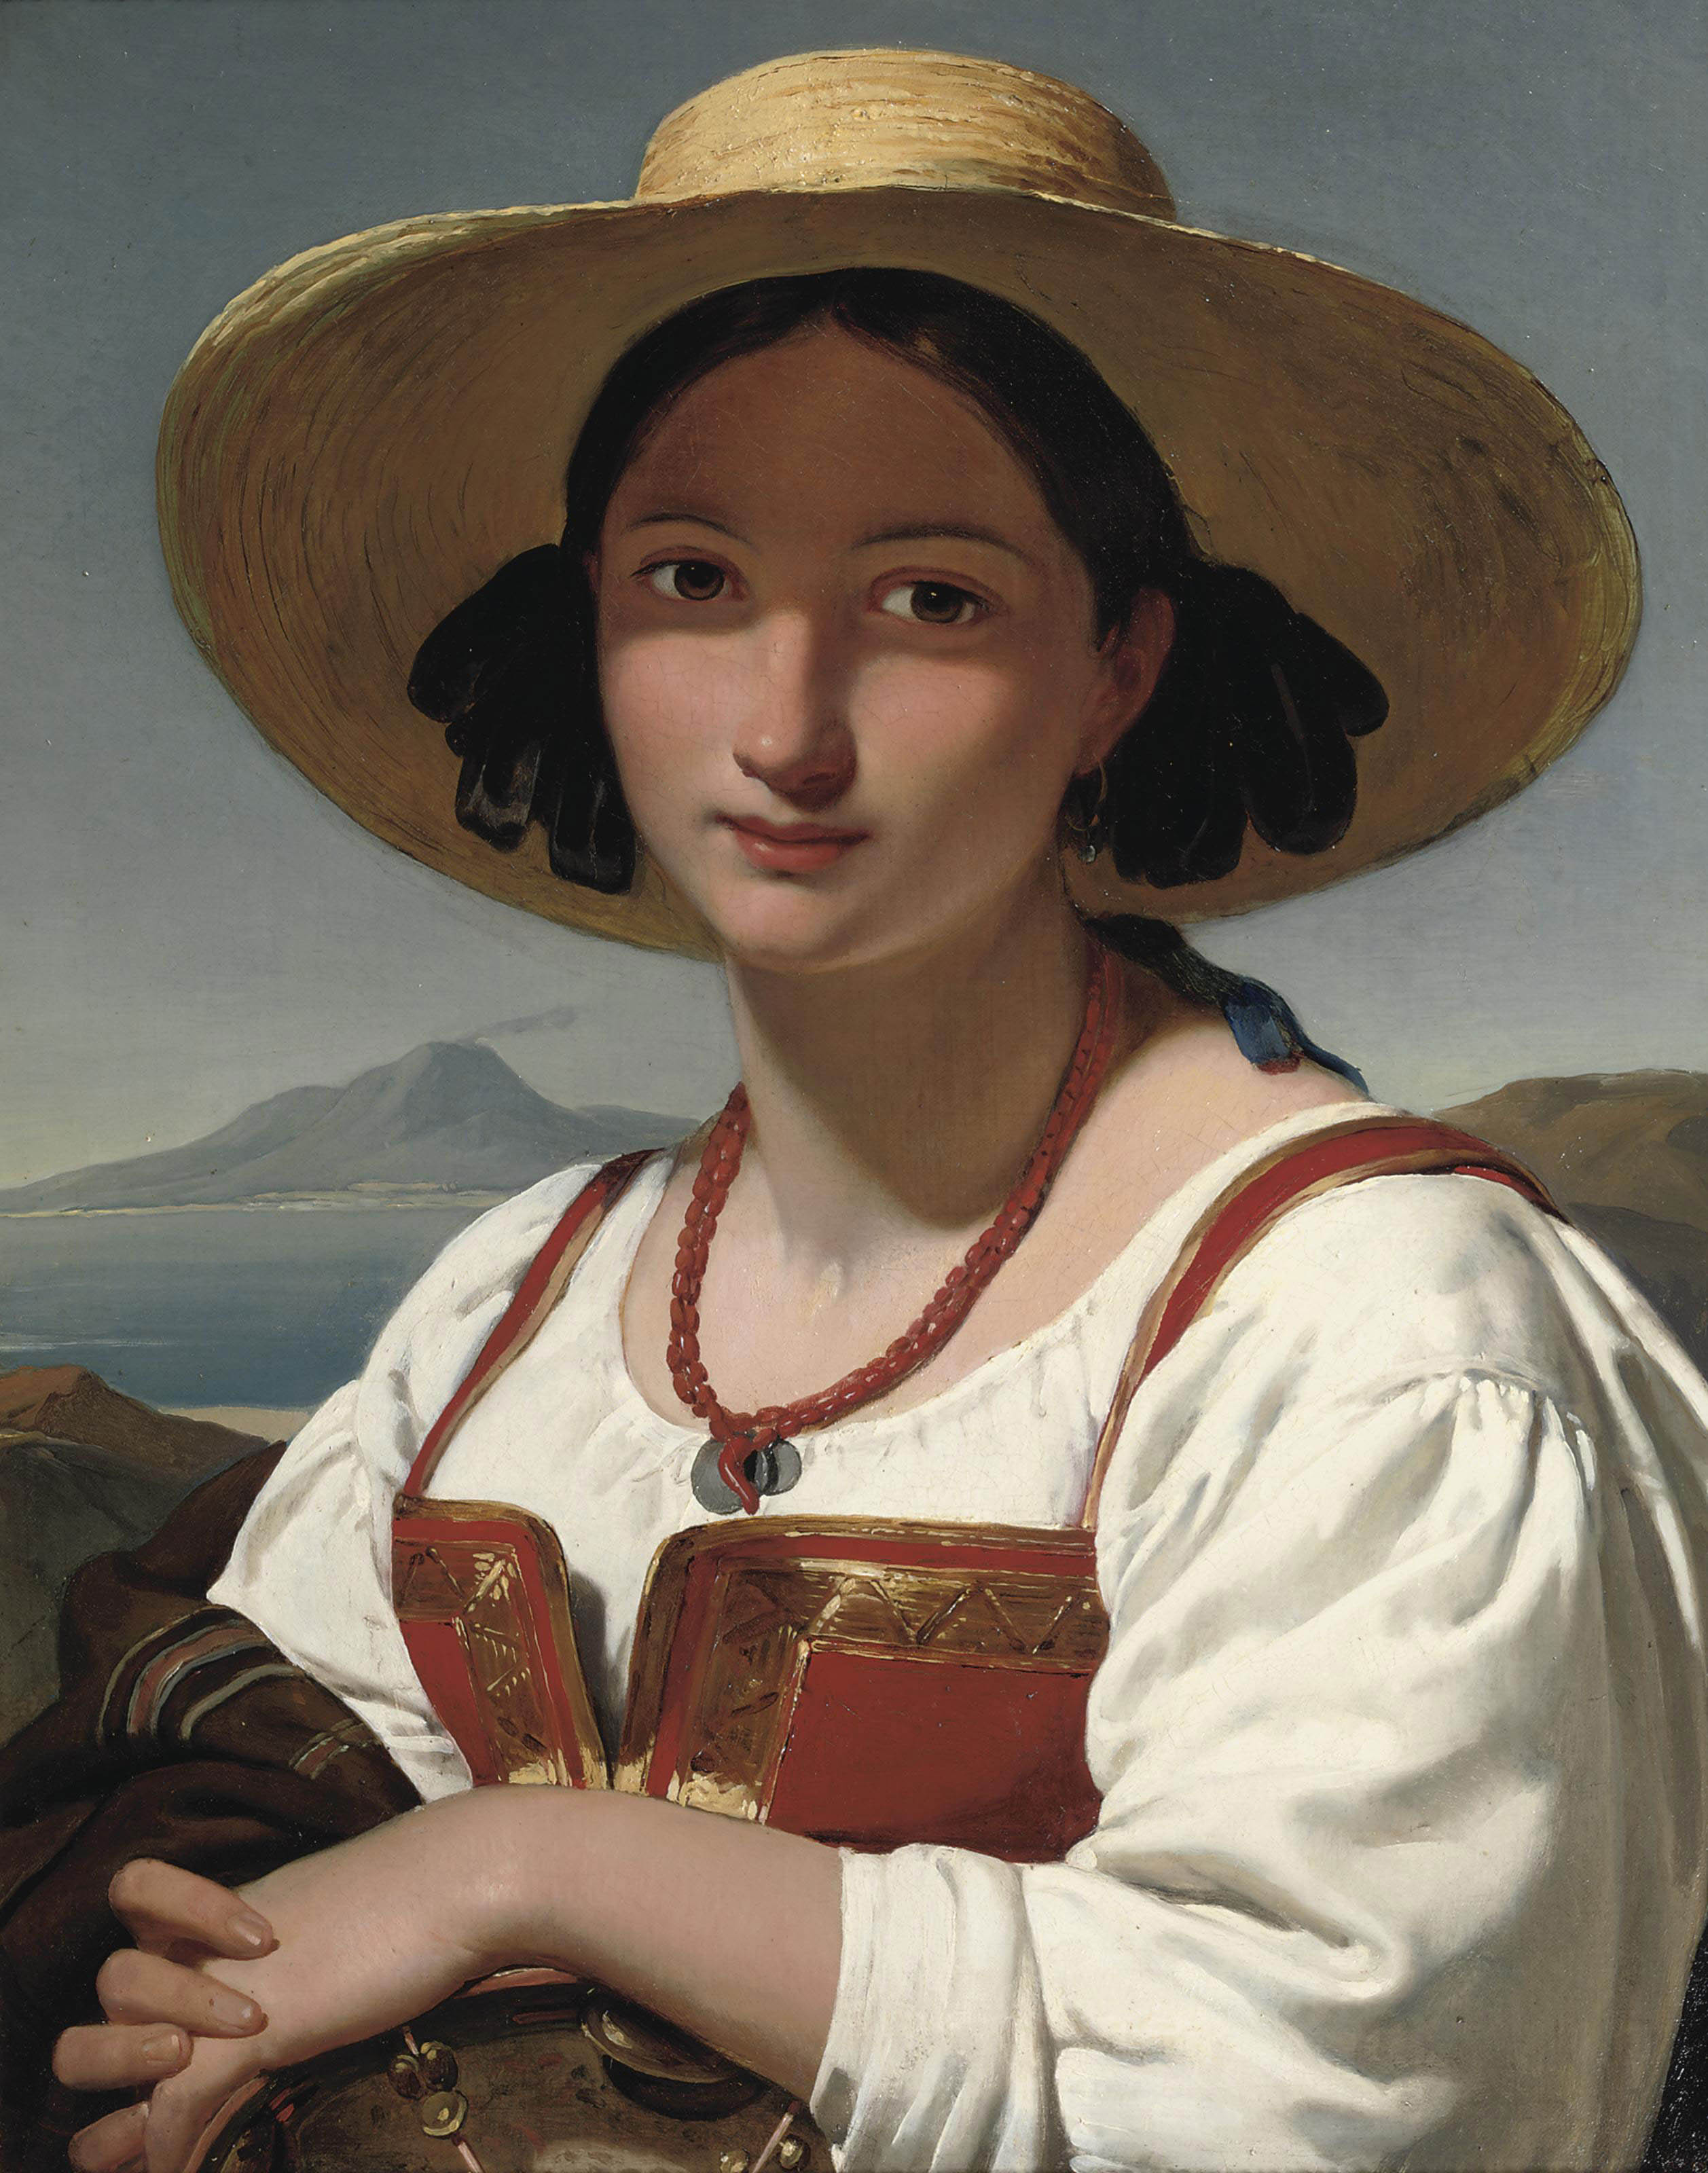 Portrait of a Neapolitan girl, with the Vesuvius in the distance